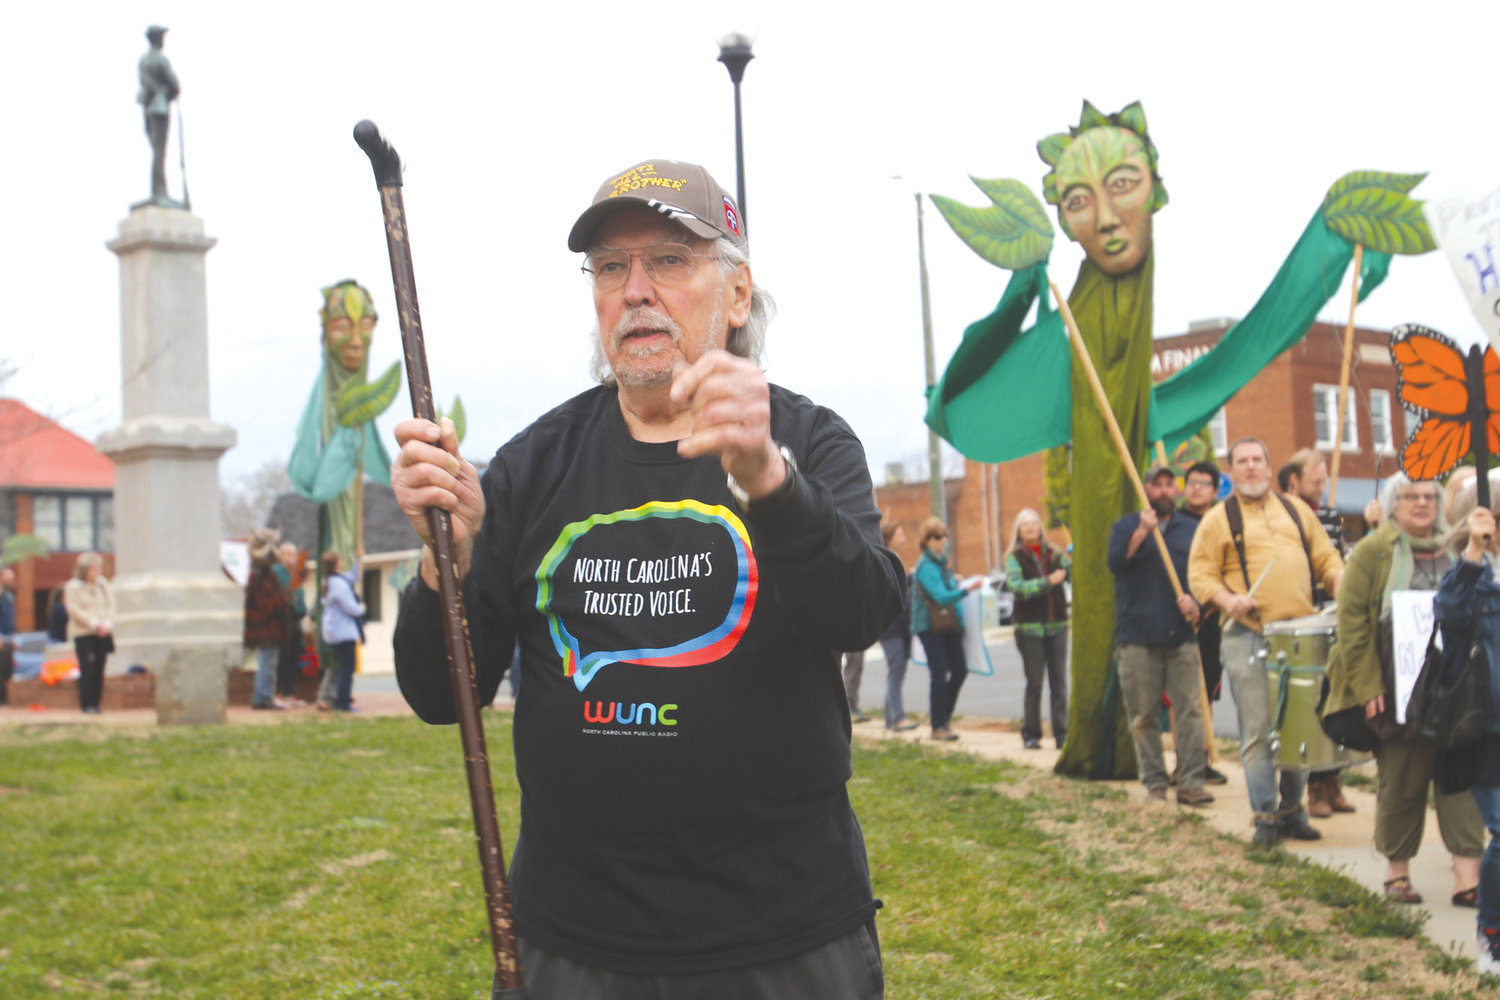 Efrain Ramirez was a part of the contingent at the 'Procession of Trees' protest at the Chatham County Courthouse.